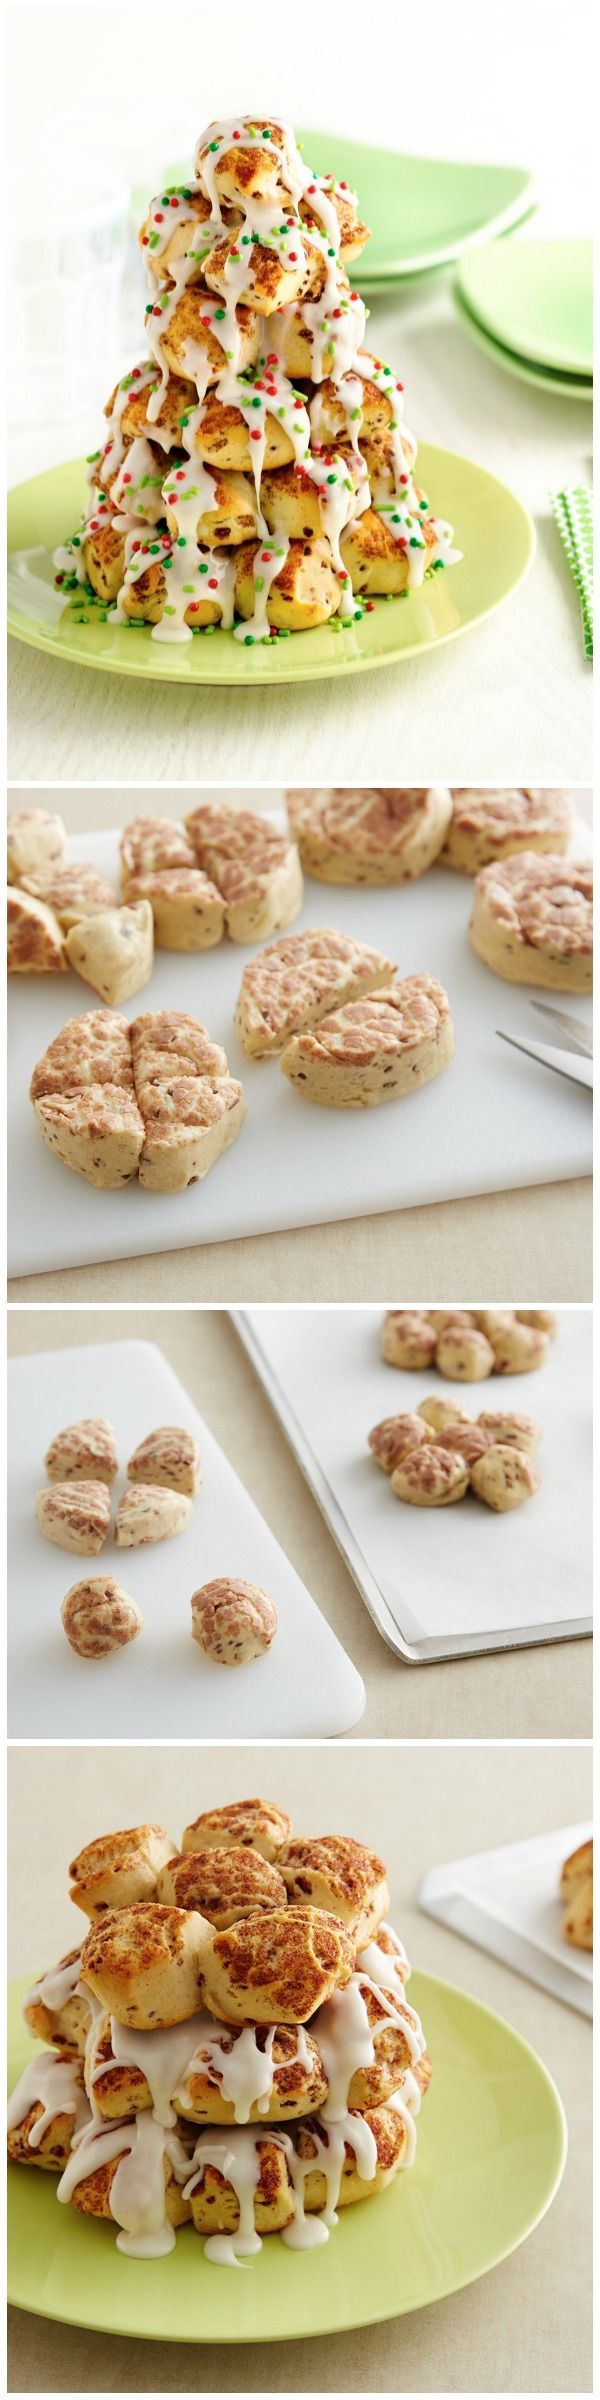 Warm, flaky cinnamon rolls raised to the next level with this easy and…